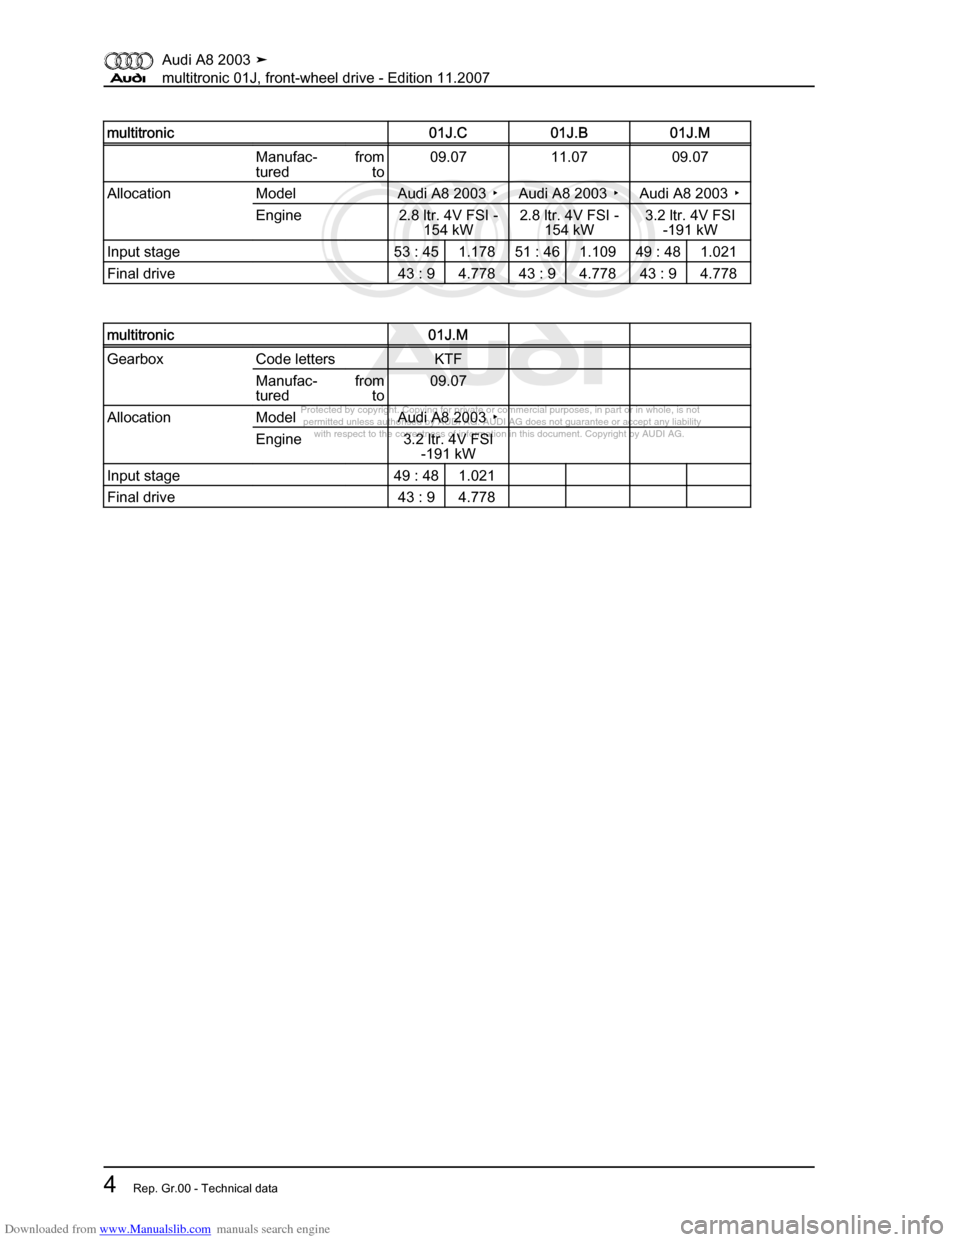 AUDI A8 2003 D3 / 2.G Multitronic System Workshop Manual, Page 8